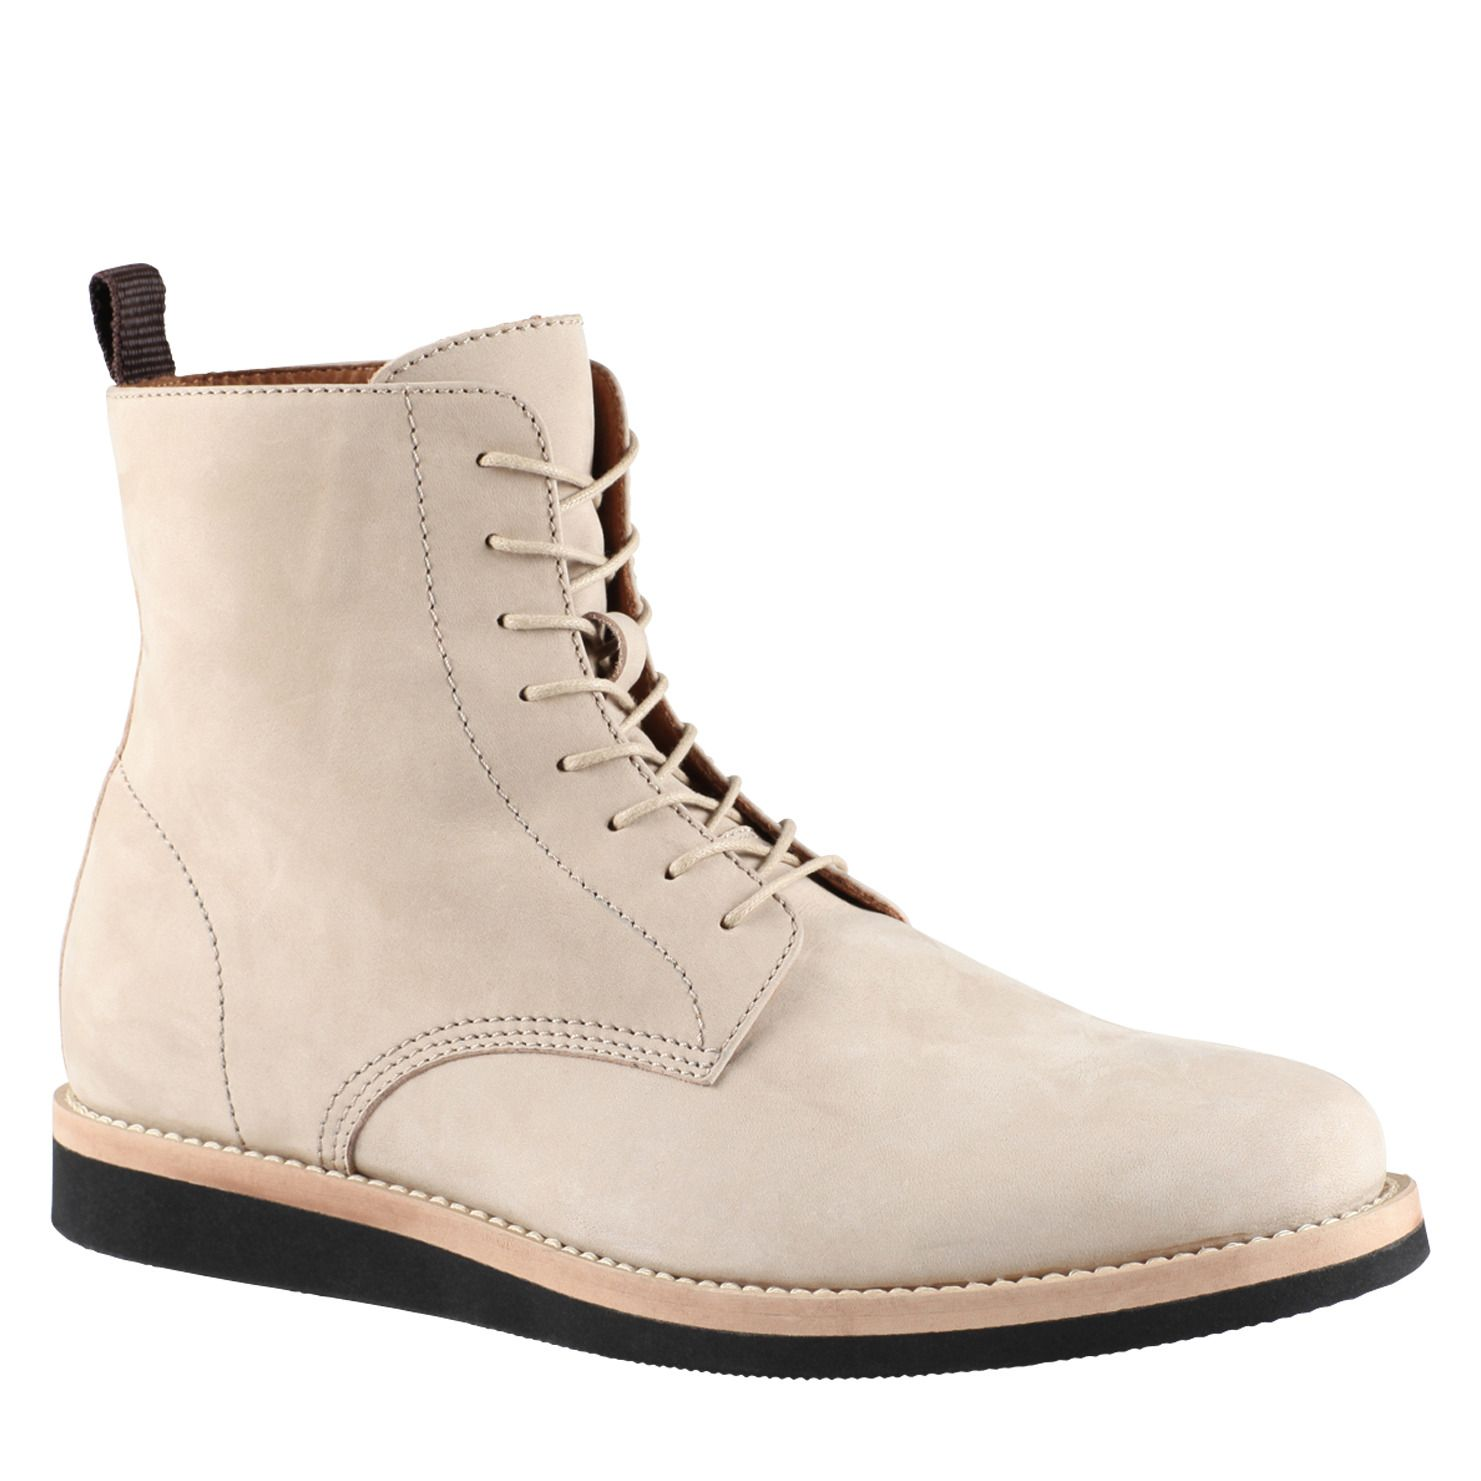 FULBERT - sale's sale boots men for sale at ALDO Shoes. | Men's ...